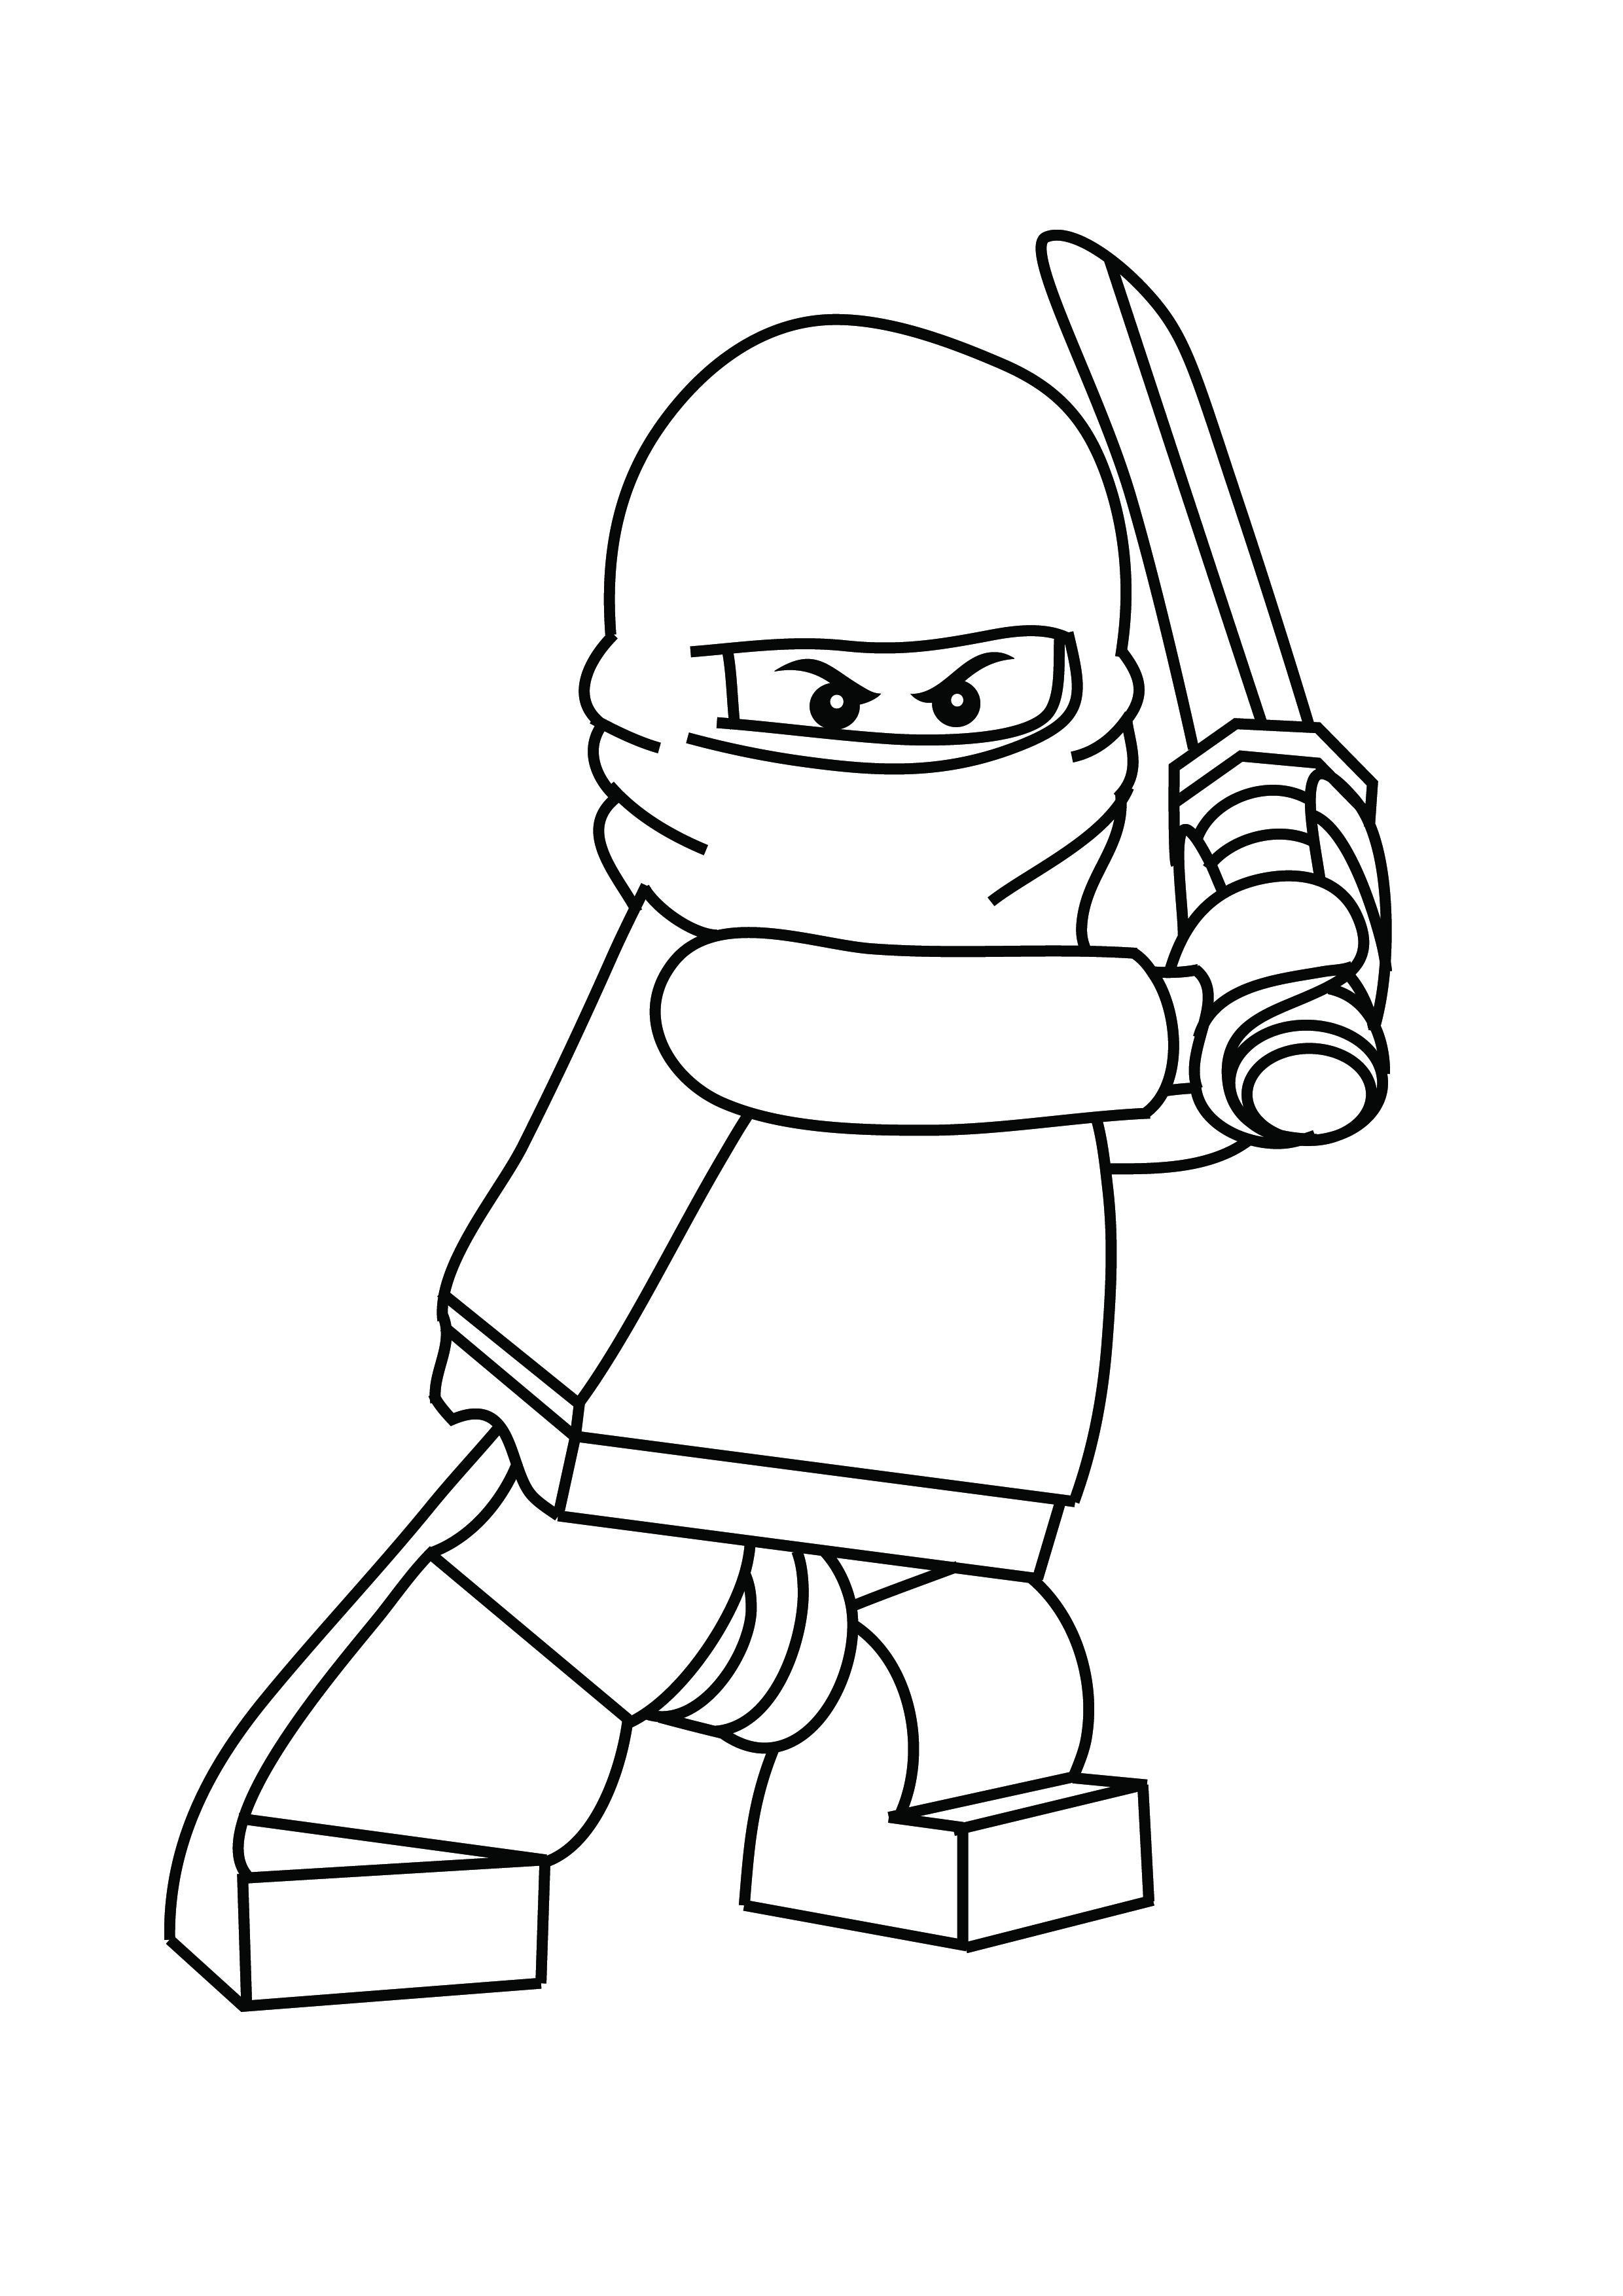 minifigure defender coloring page